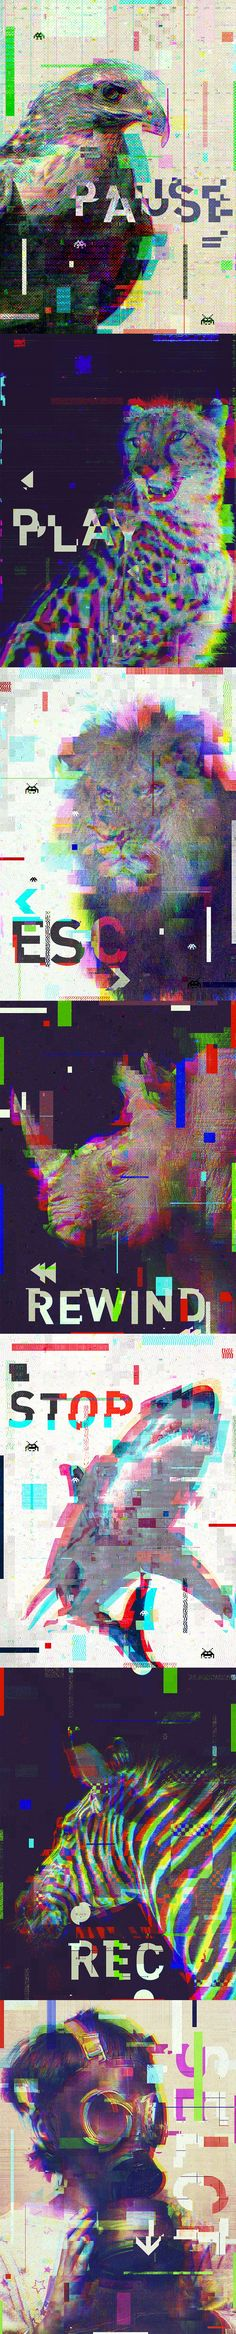 Glitch_Corruption_Animals_ By Mr. Kuns